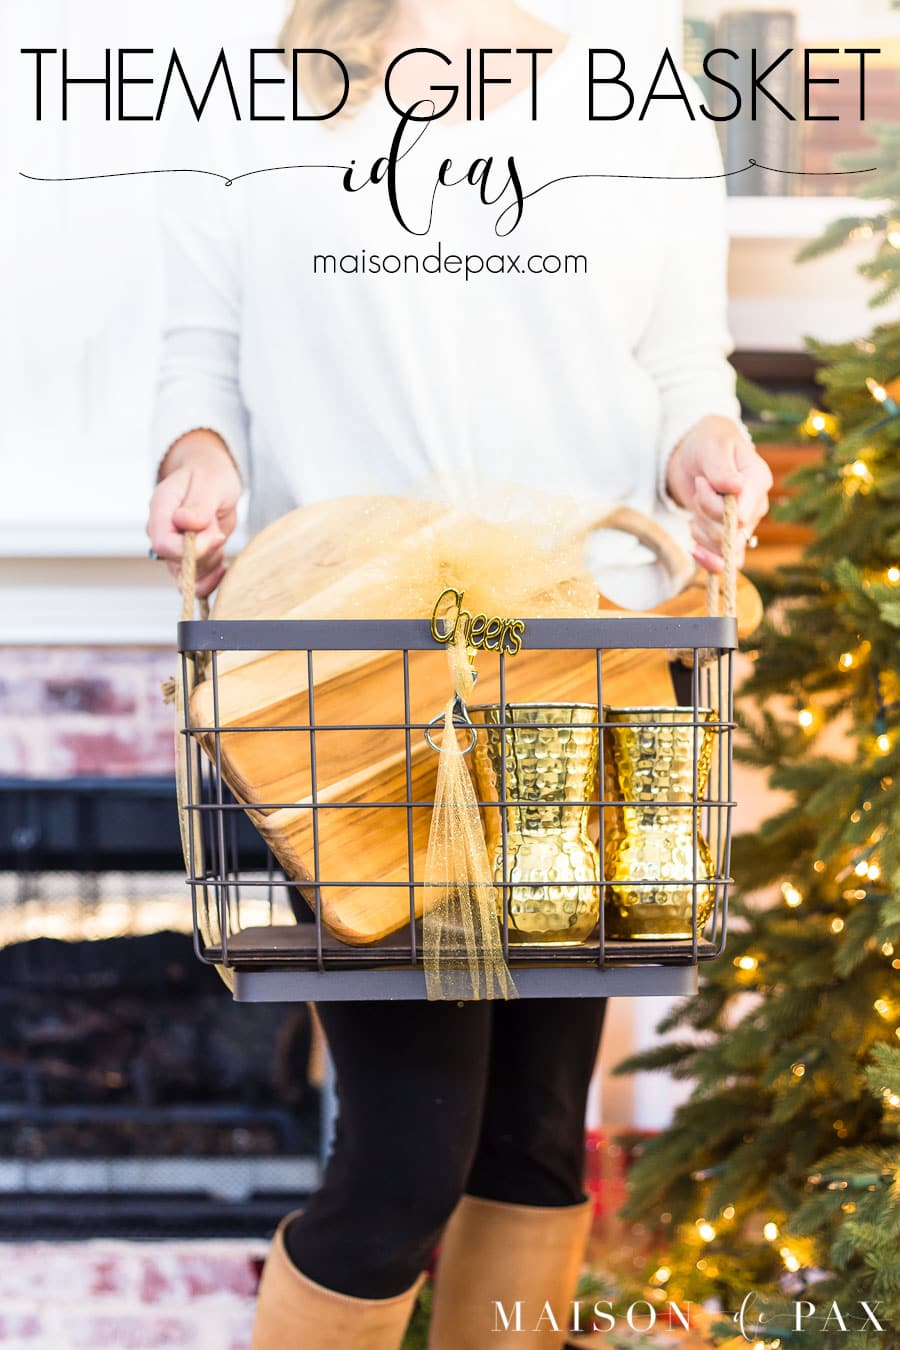 woman holding basket in front of tree with overlay: themed gift basket ideas | Maison de Pax